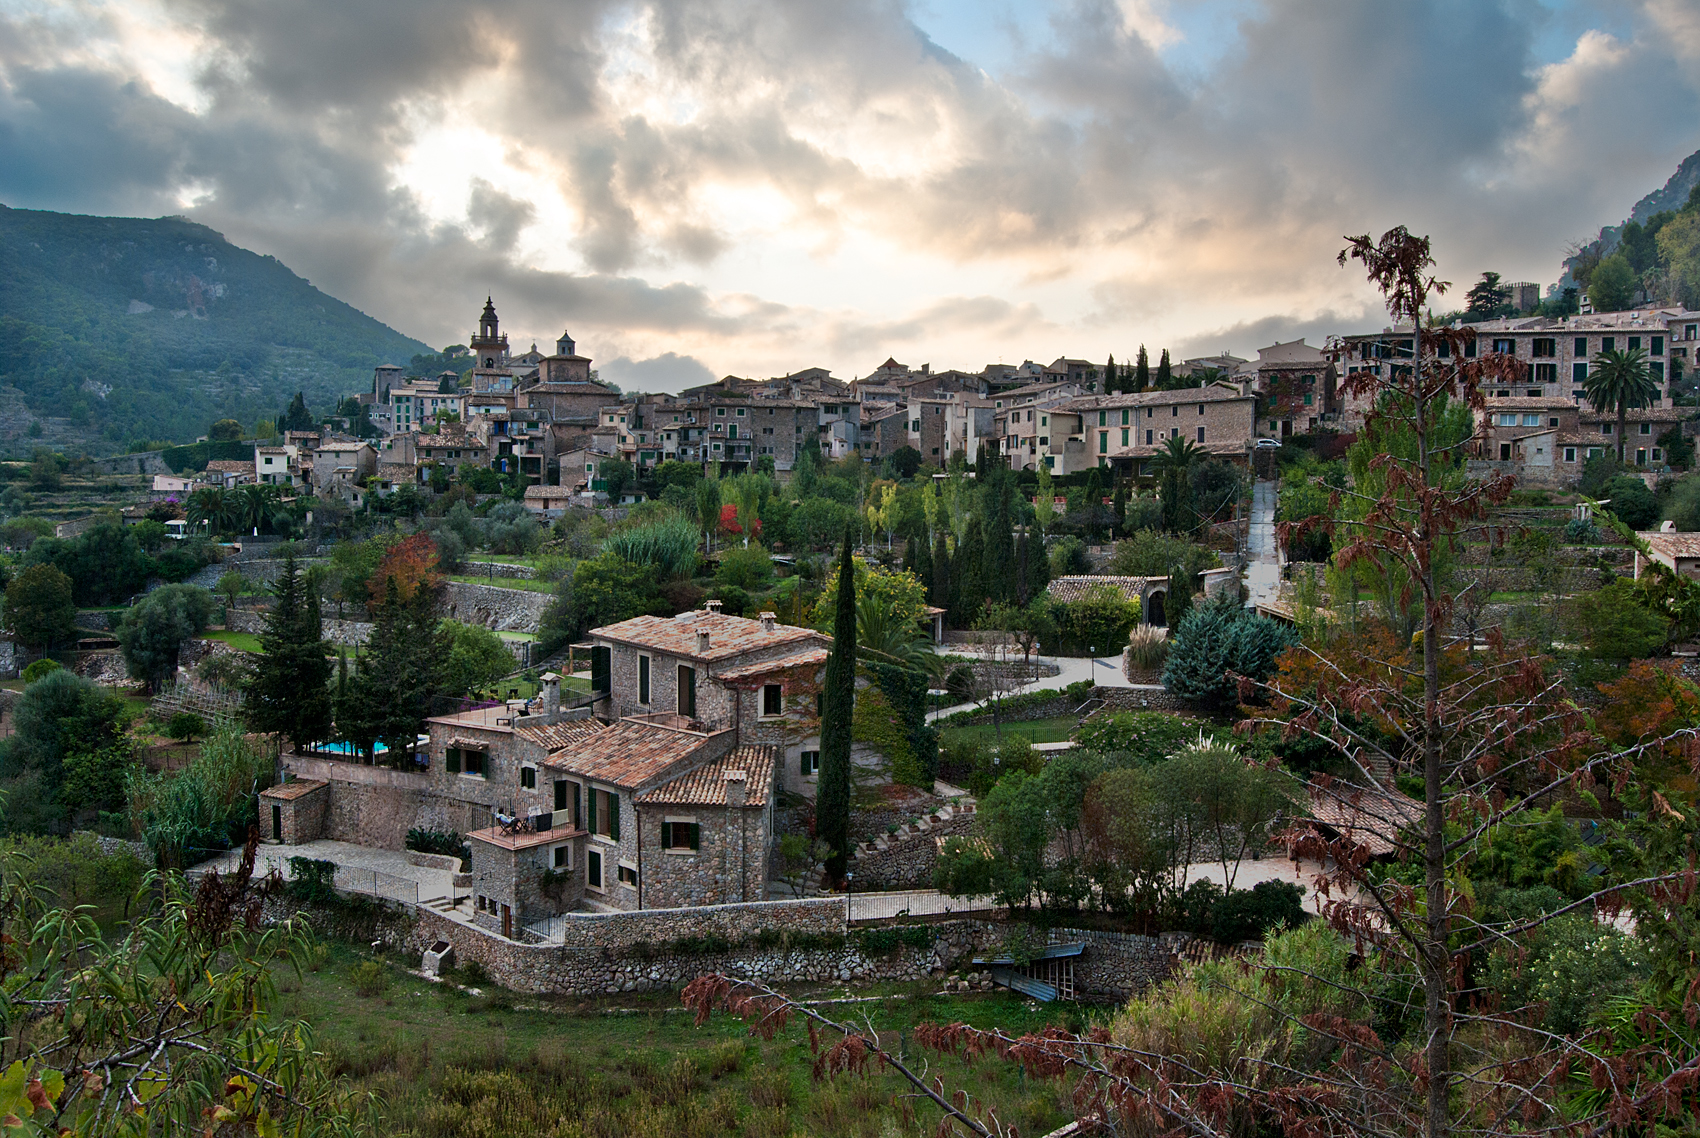 Valldemossa is one of the most authentic mountain villages in Mallorca